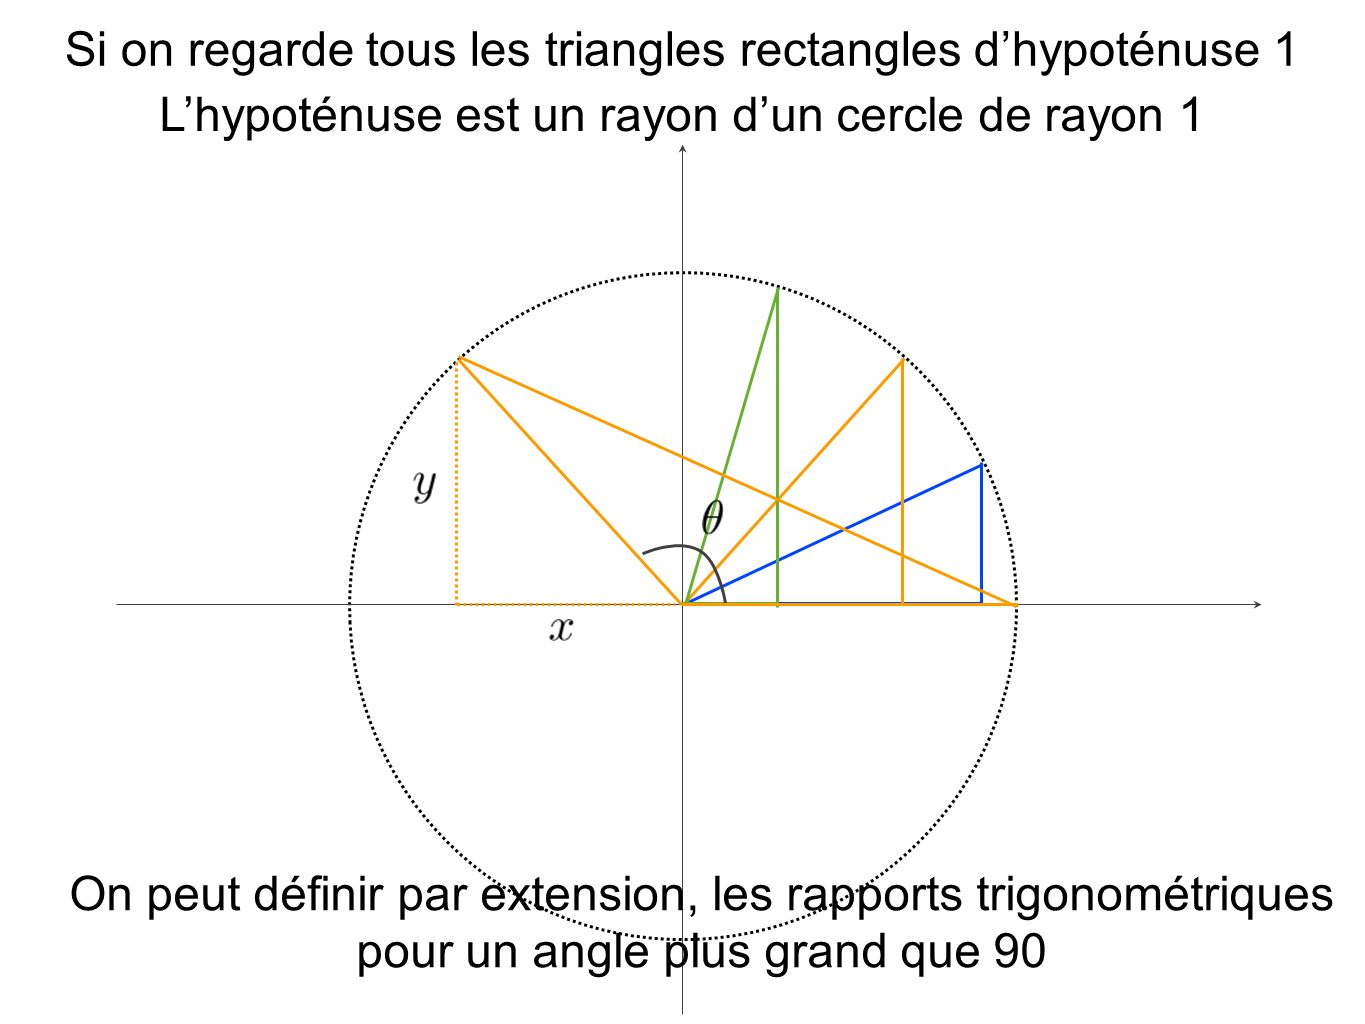 Si on regarde tous les triangles rectangles d'hypoténuse 1